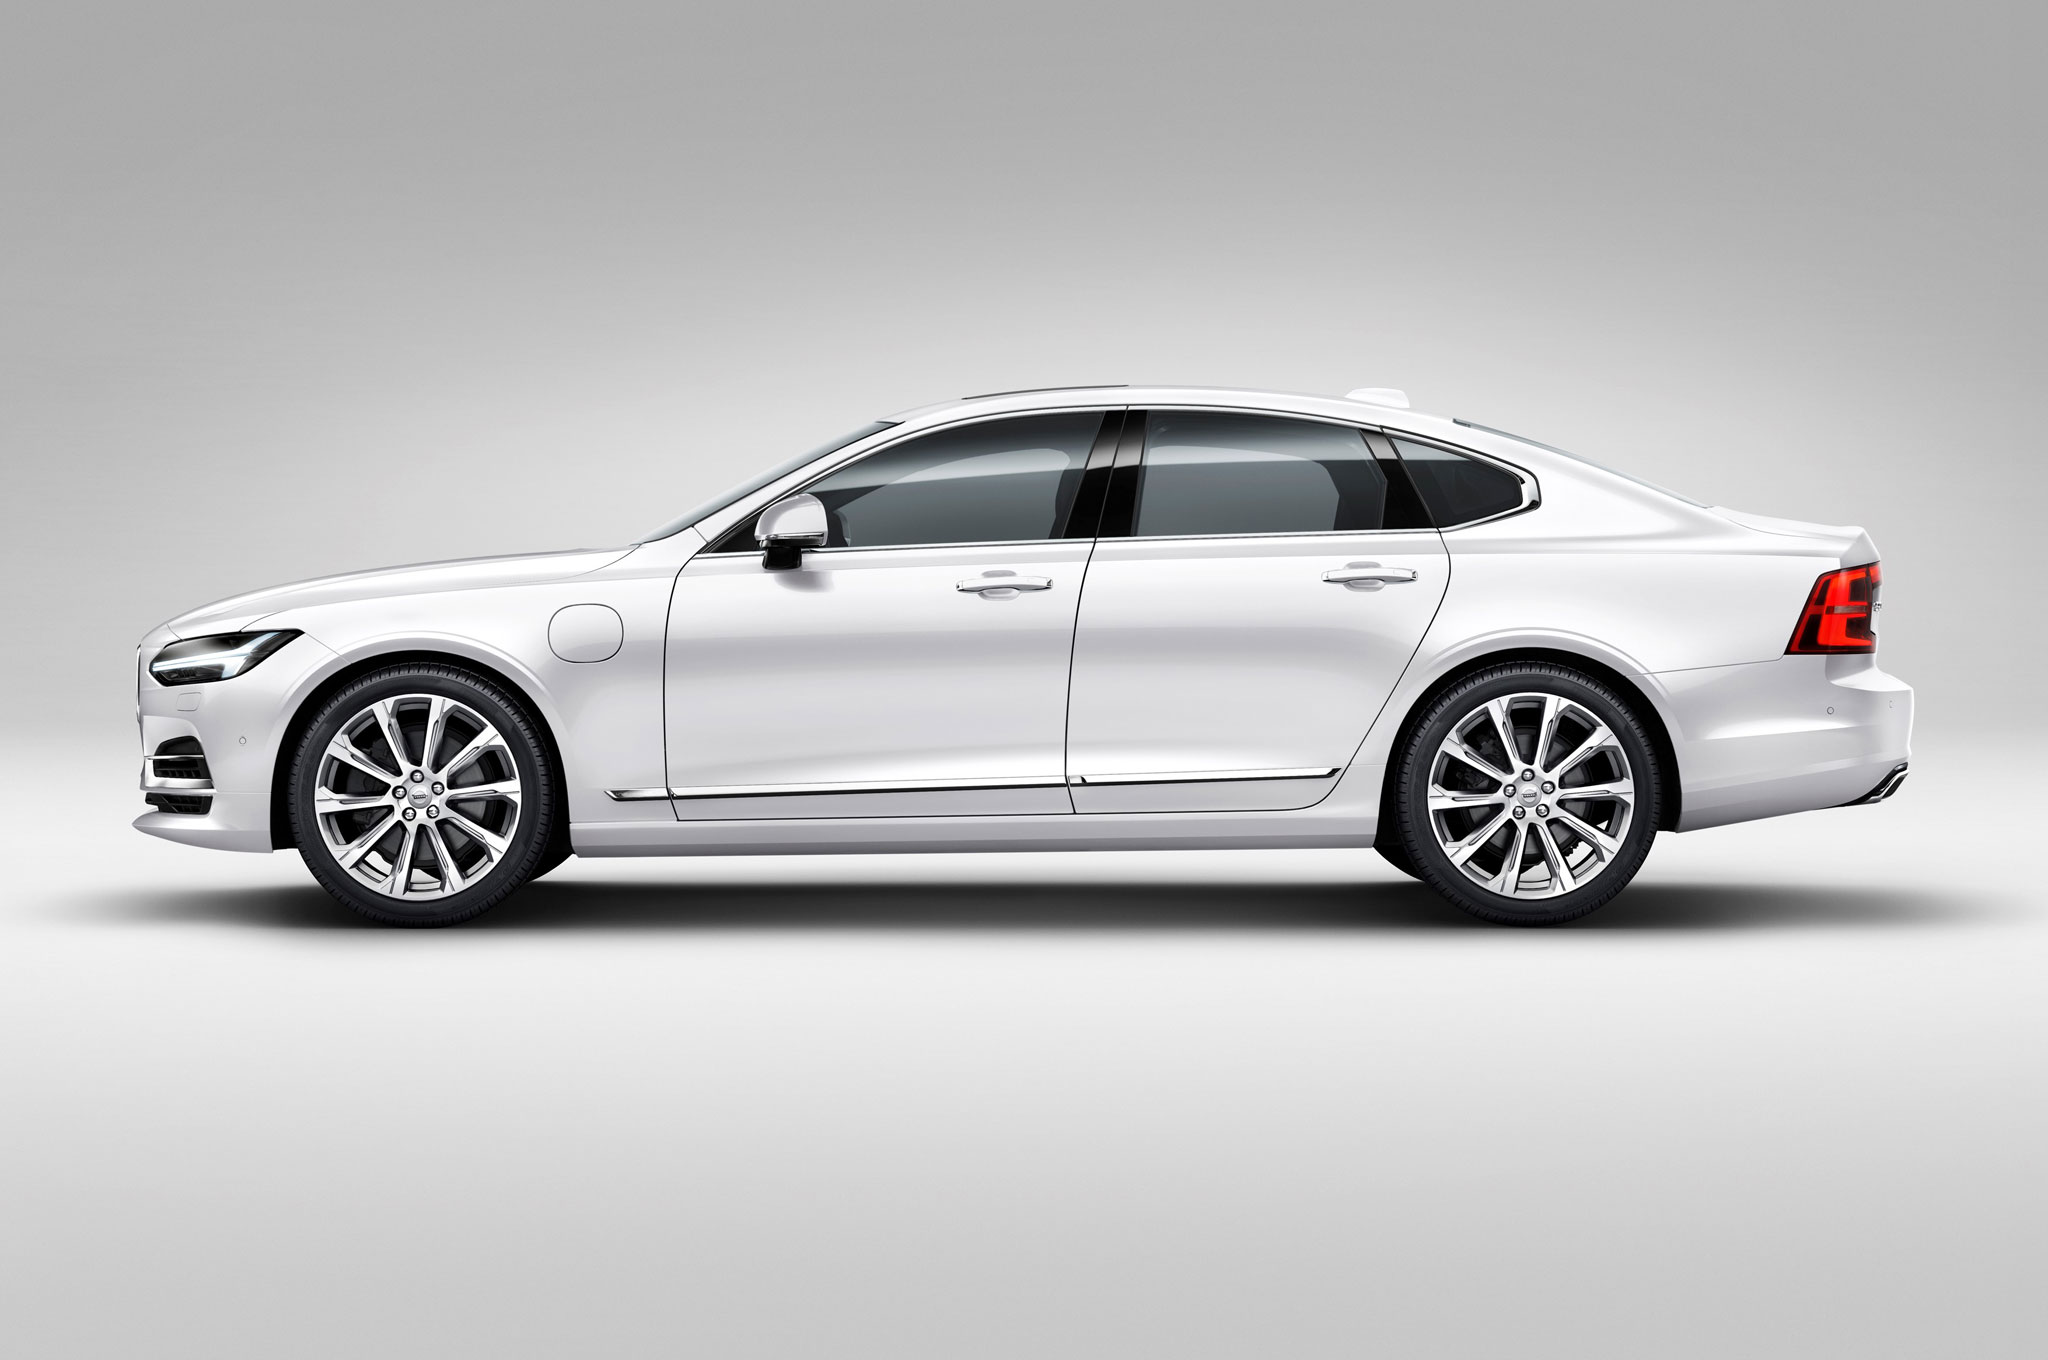 You Can Now Build Your Own 2017 Volvo S90 Sedan Online